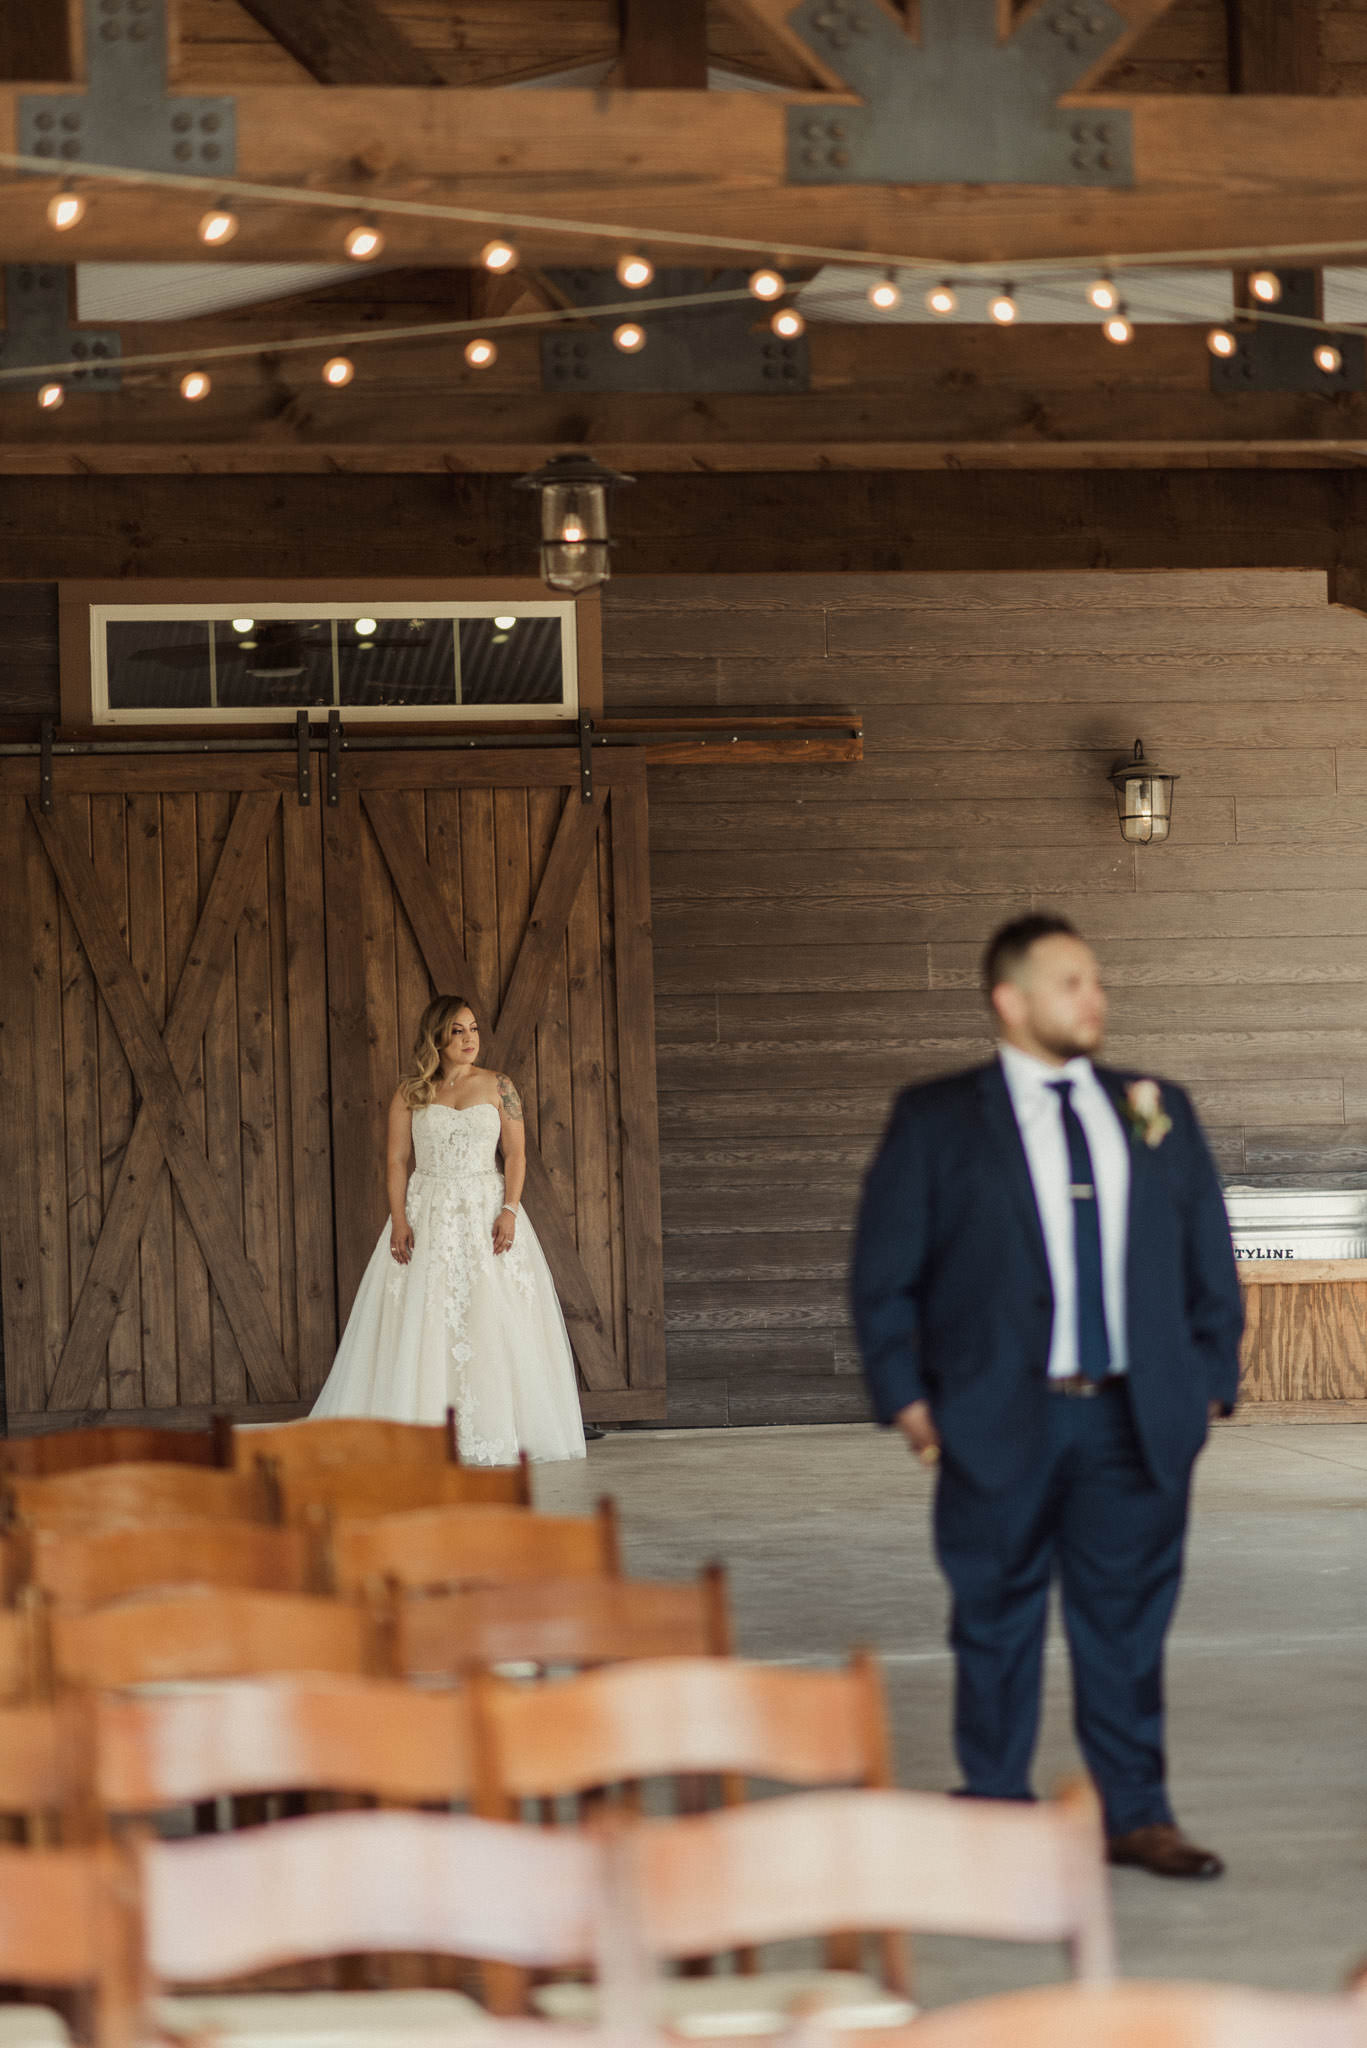 stephanie-gabe-peach-creek-ranch-wedding-college-station-houston-photographer-38.jpg